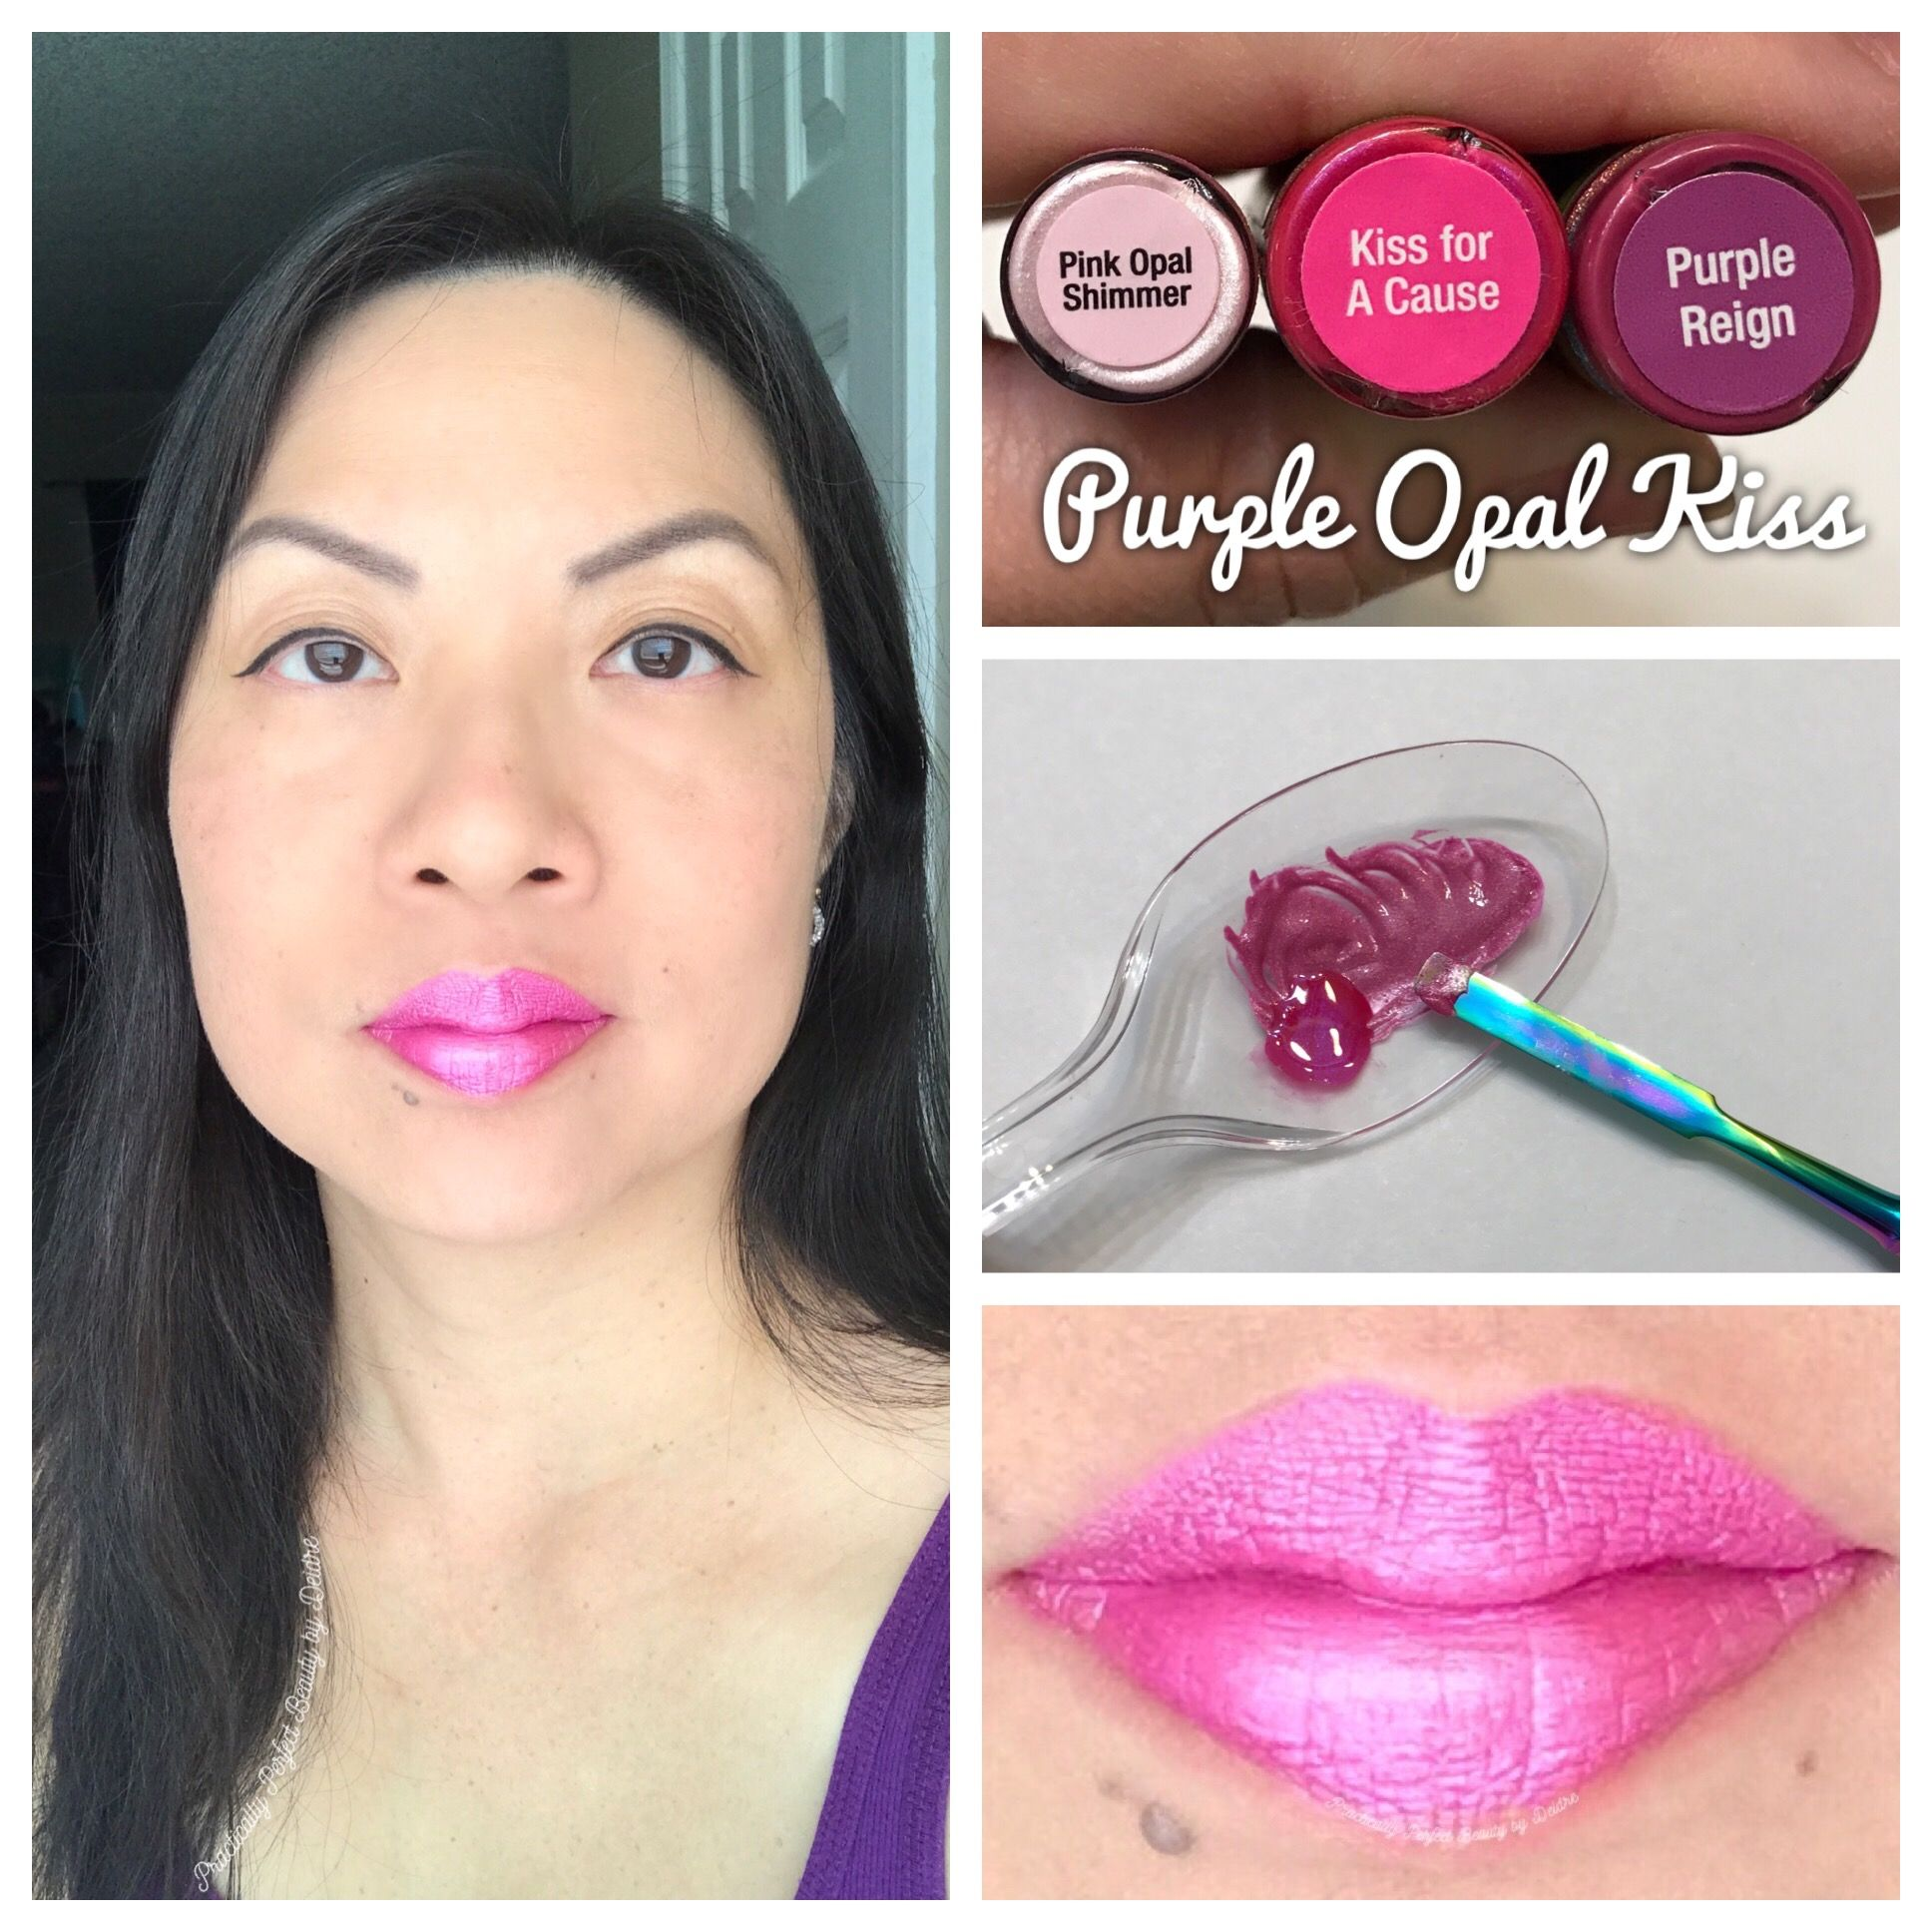 Did You Know You Can Mix Shadowsense With Lipsense To